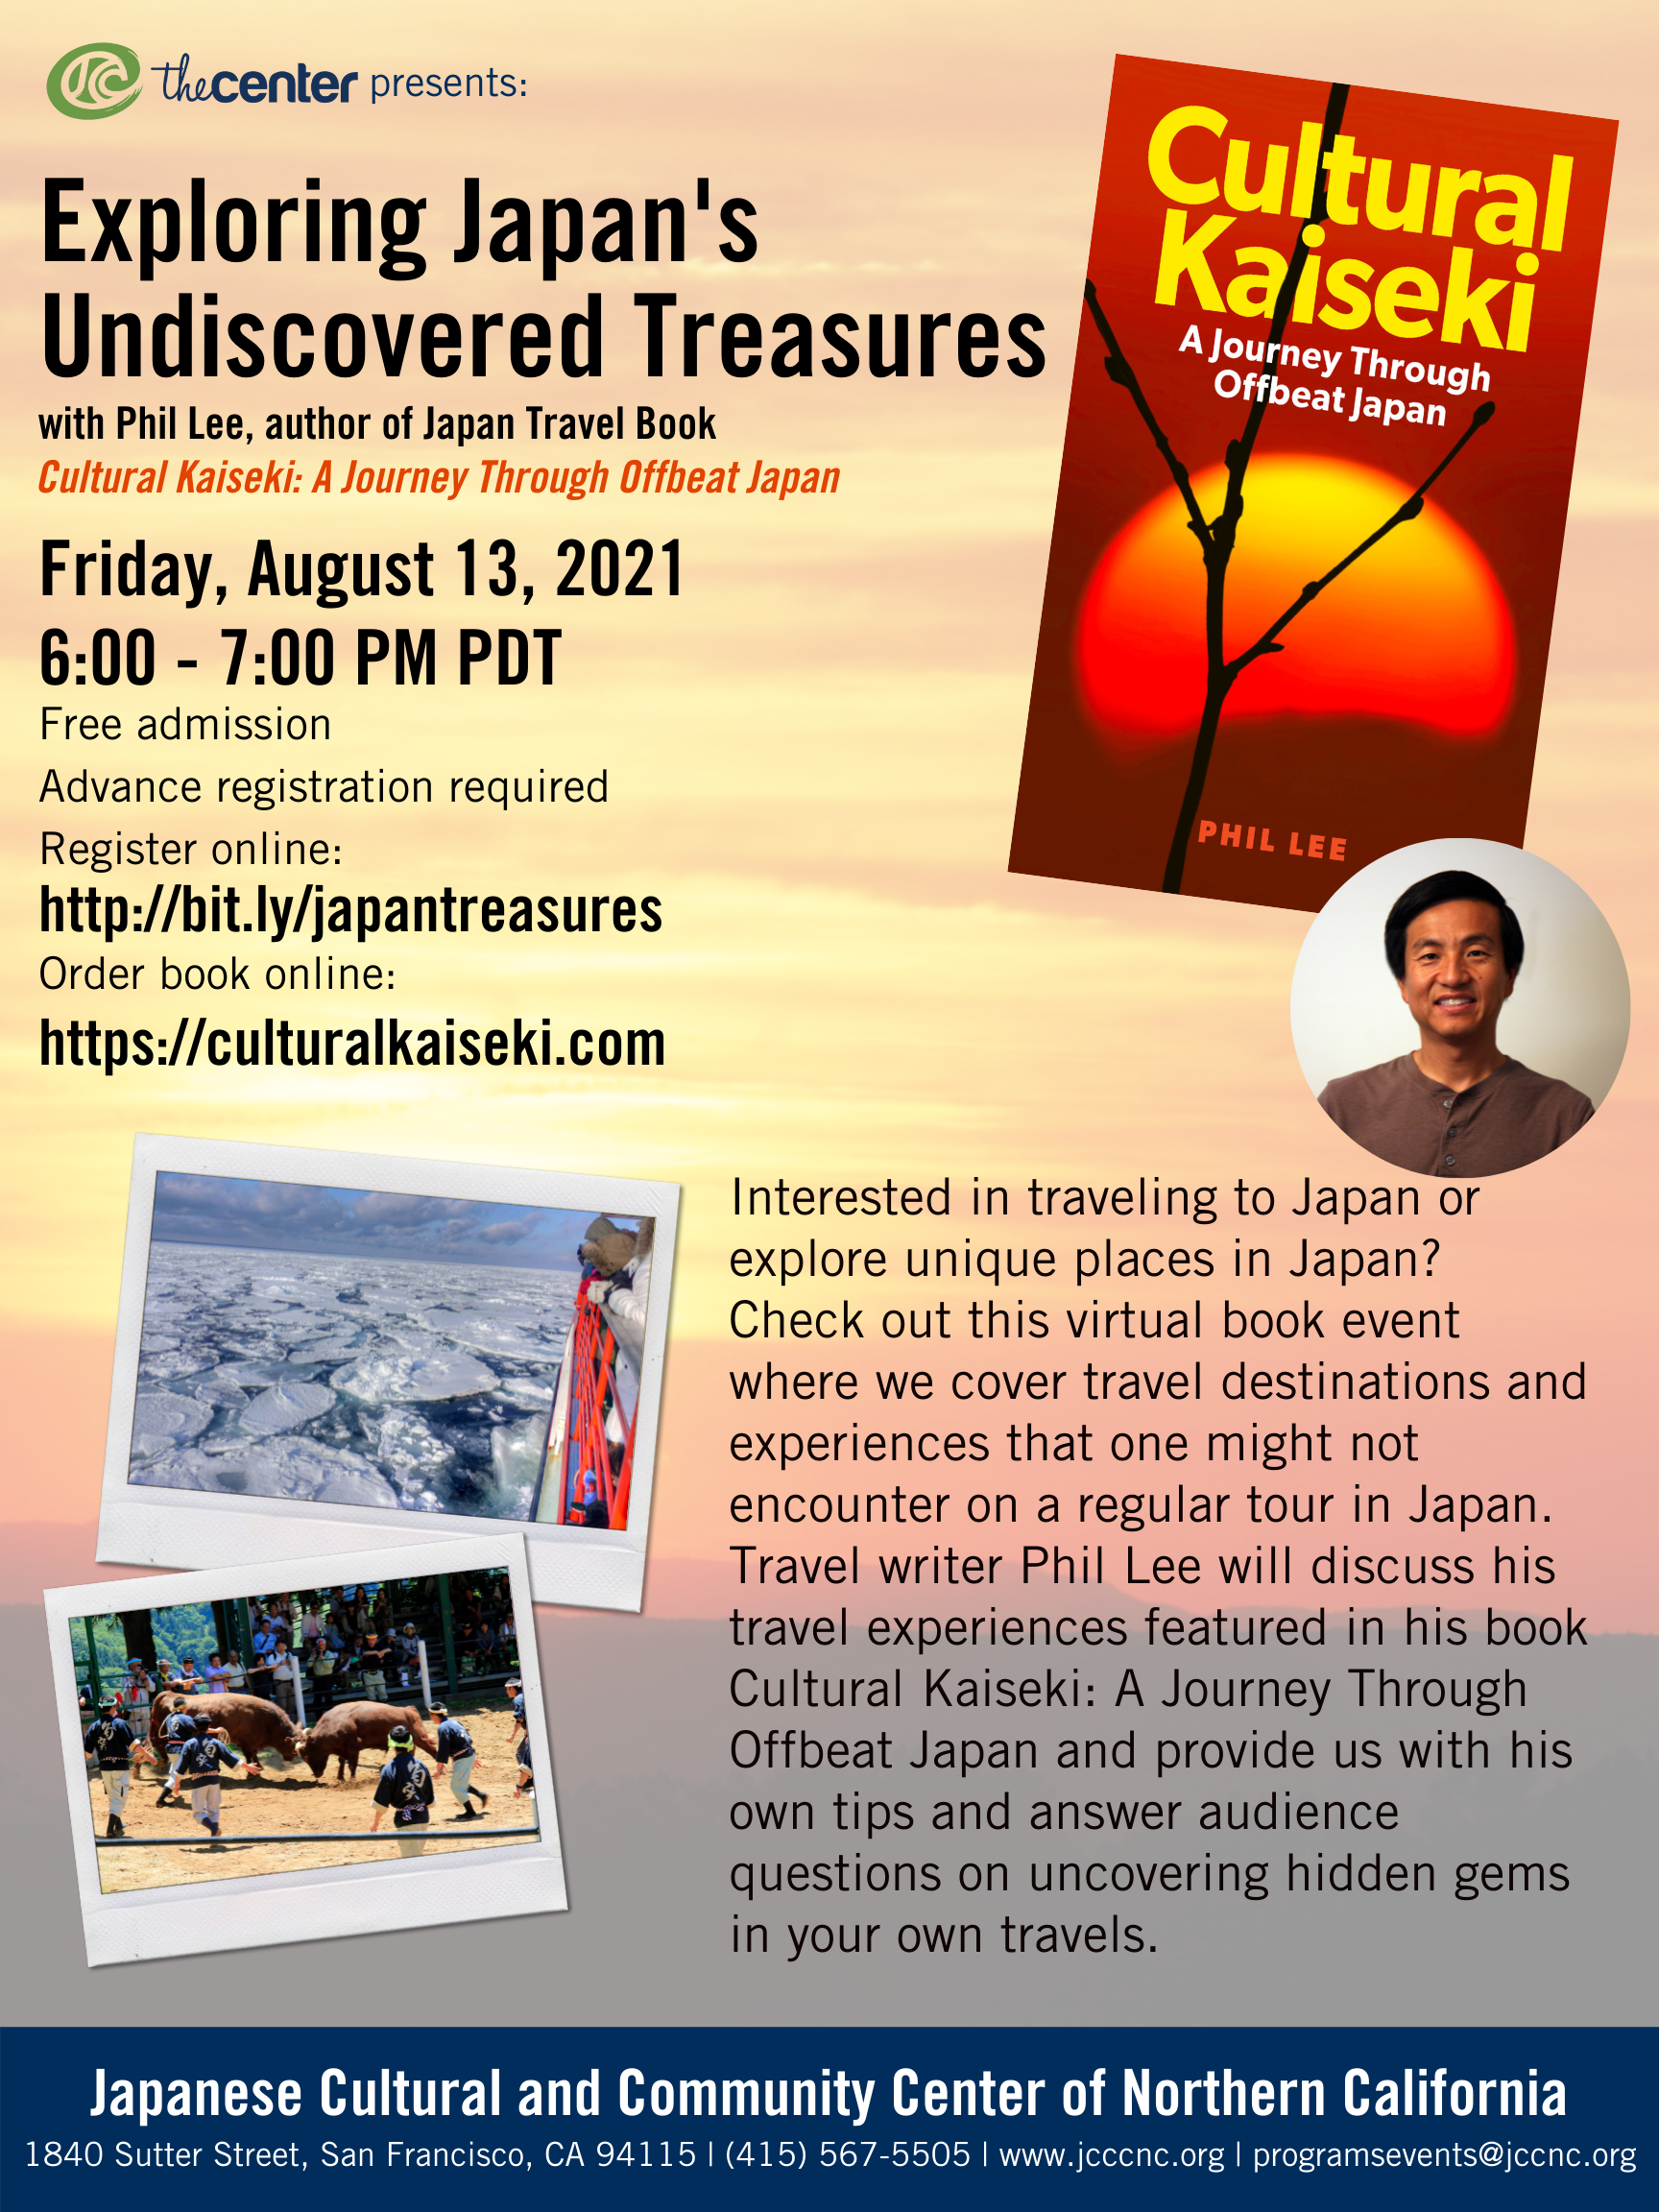 Virtual Author Talk: Exploring Japan's Undiscovered Treasures with Phil Lee author of Cultural Kaiseki: A Journey Through Offbeat Japan